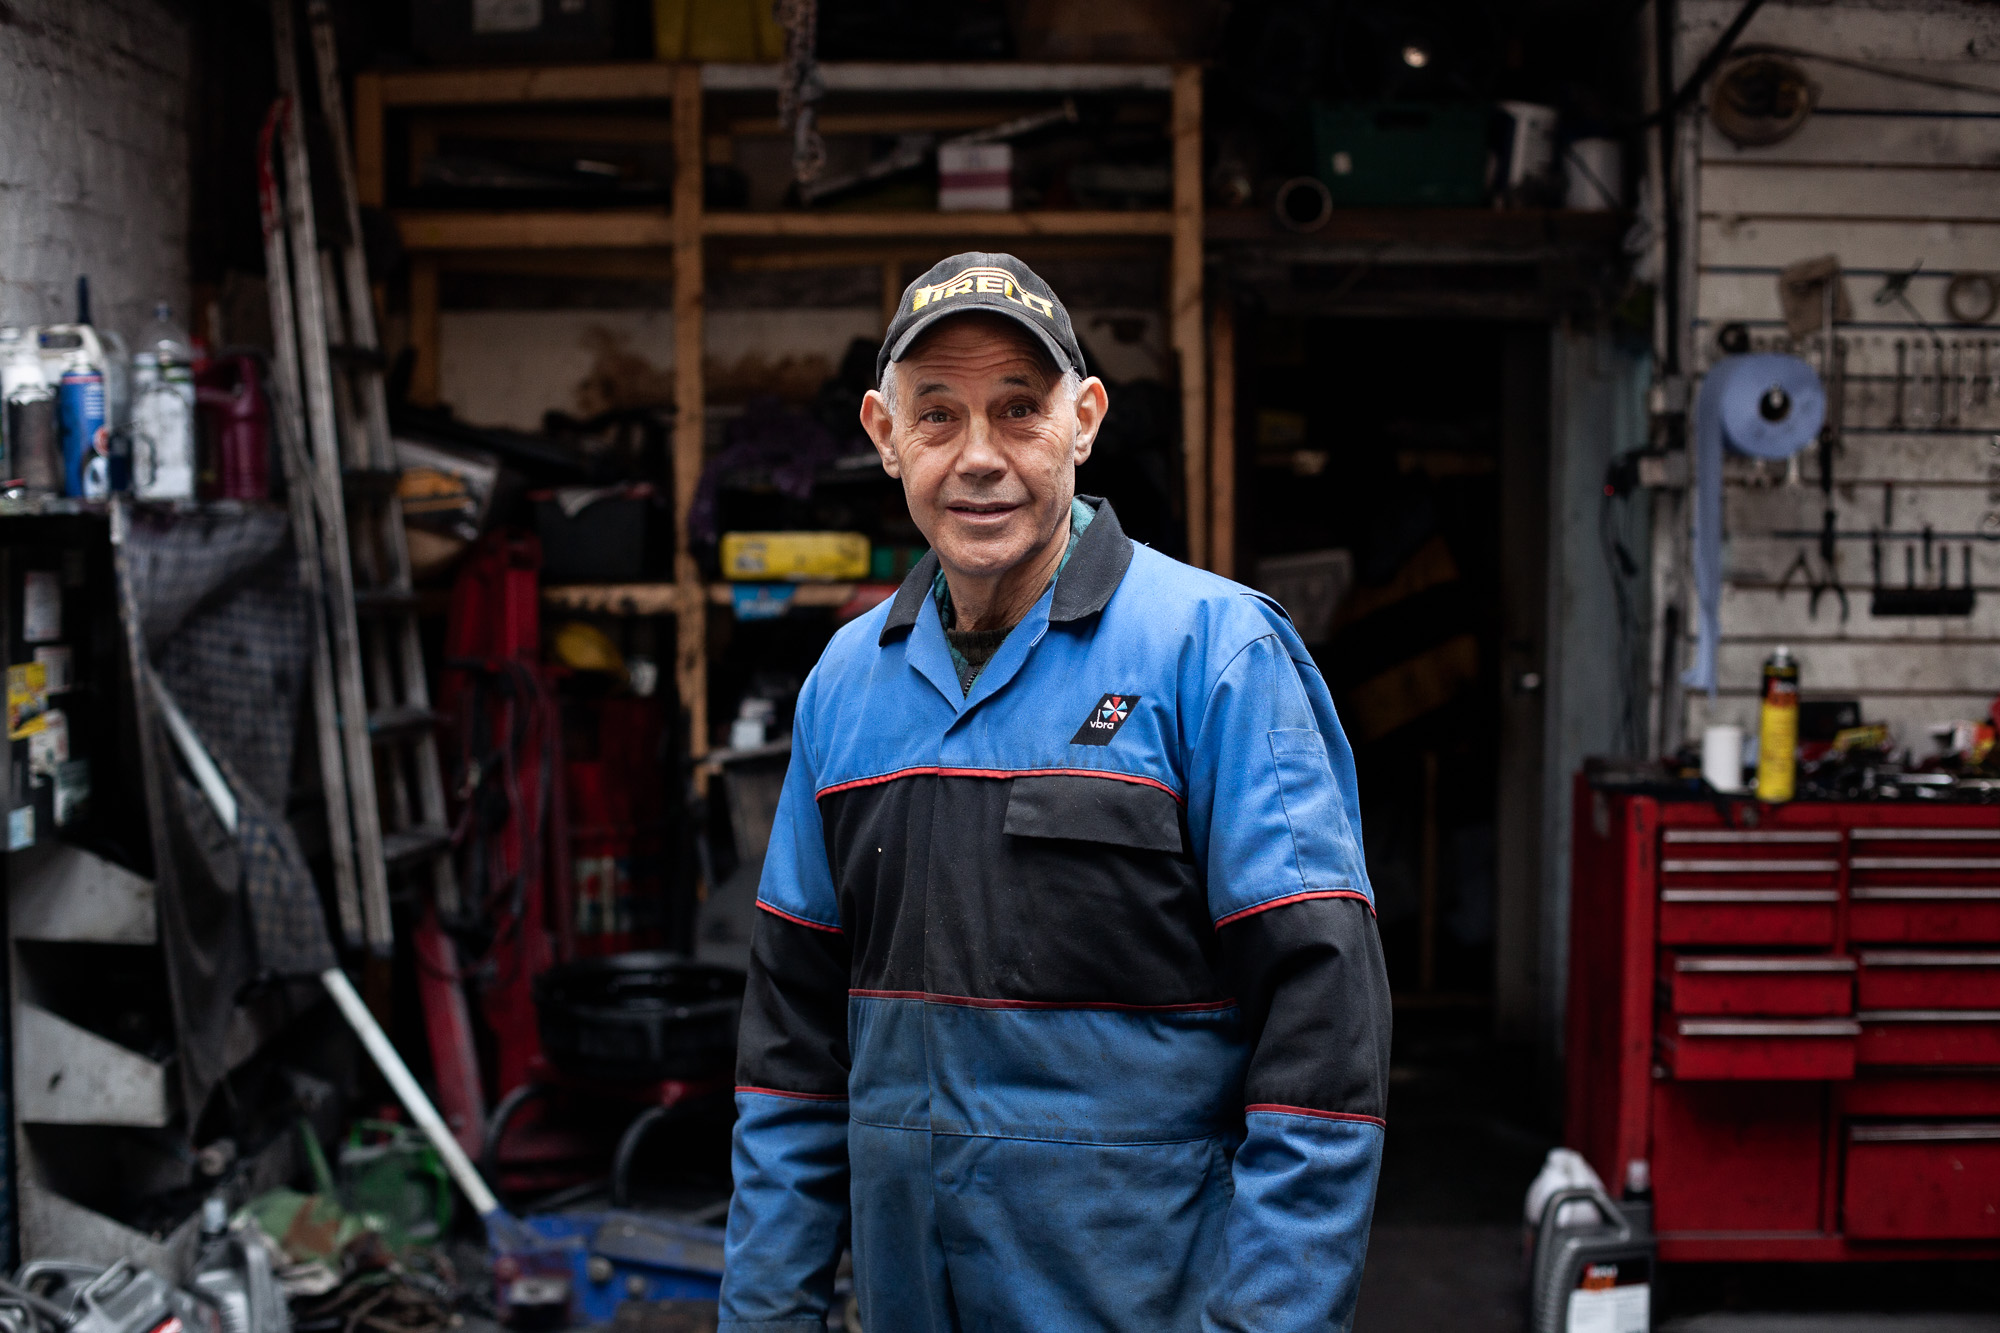 Born in Turkish Cyprus, Ibrahim Zuki has lived in north London since the early 1960's where he is working now as a car mechanic.